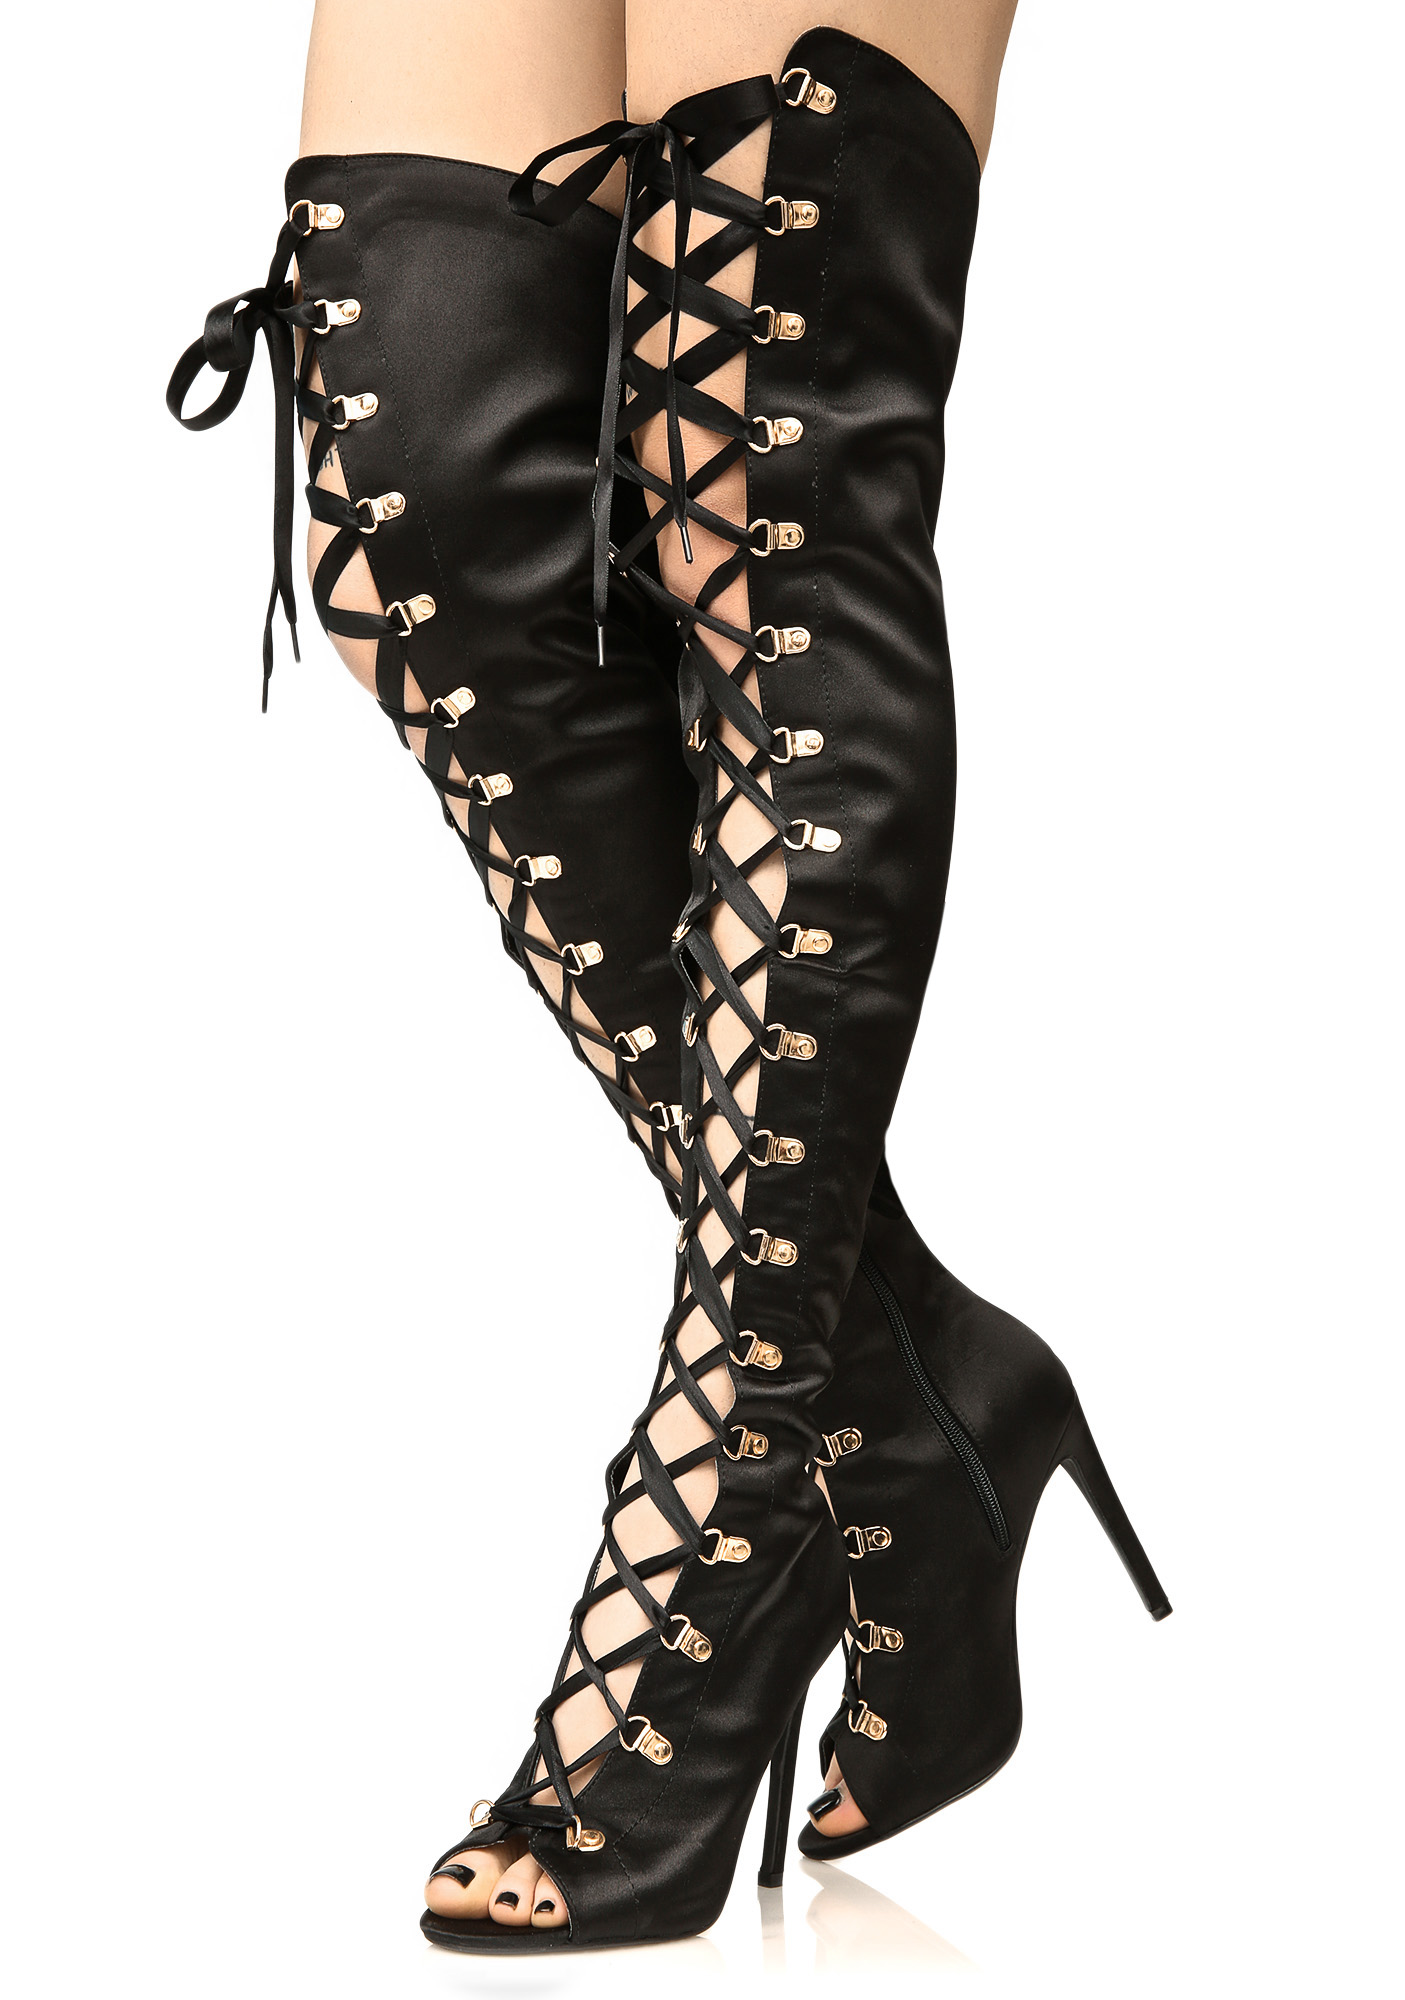 Vegan Leather Lace-Up Thigh High Boots